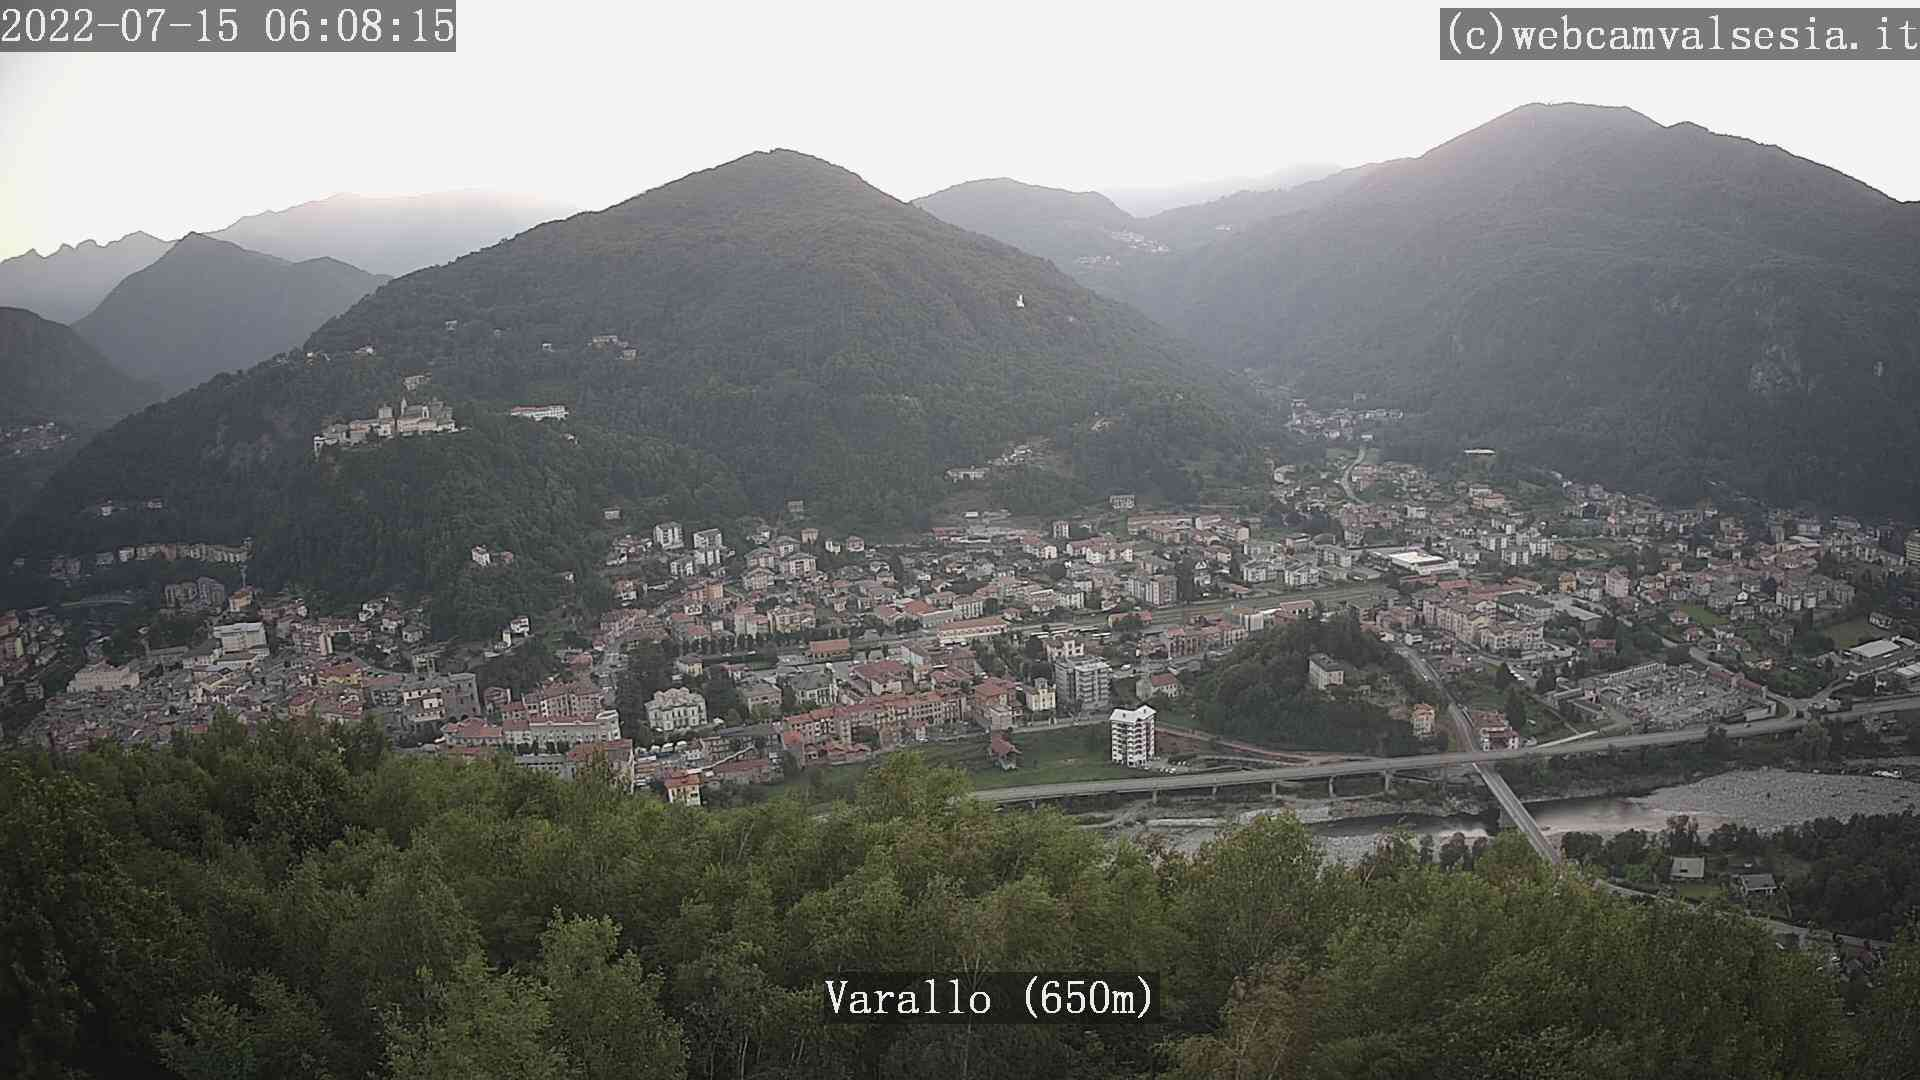 Webcam_Varallo